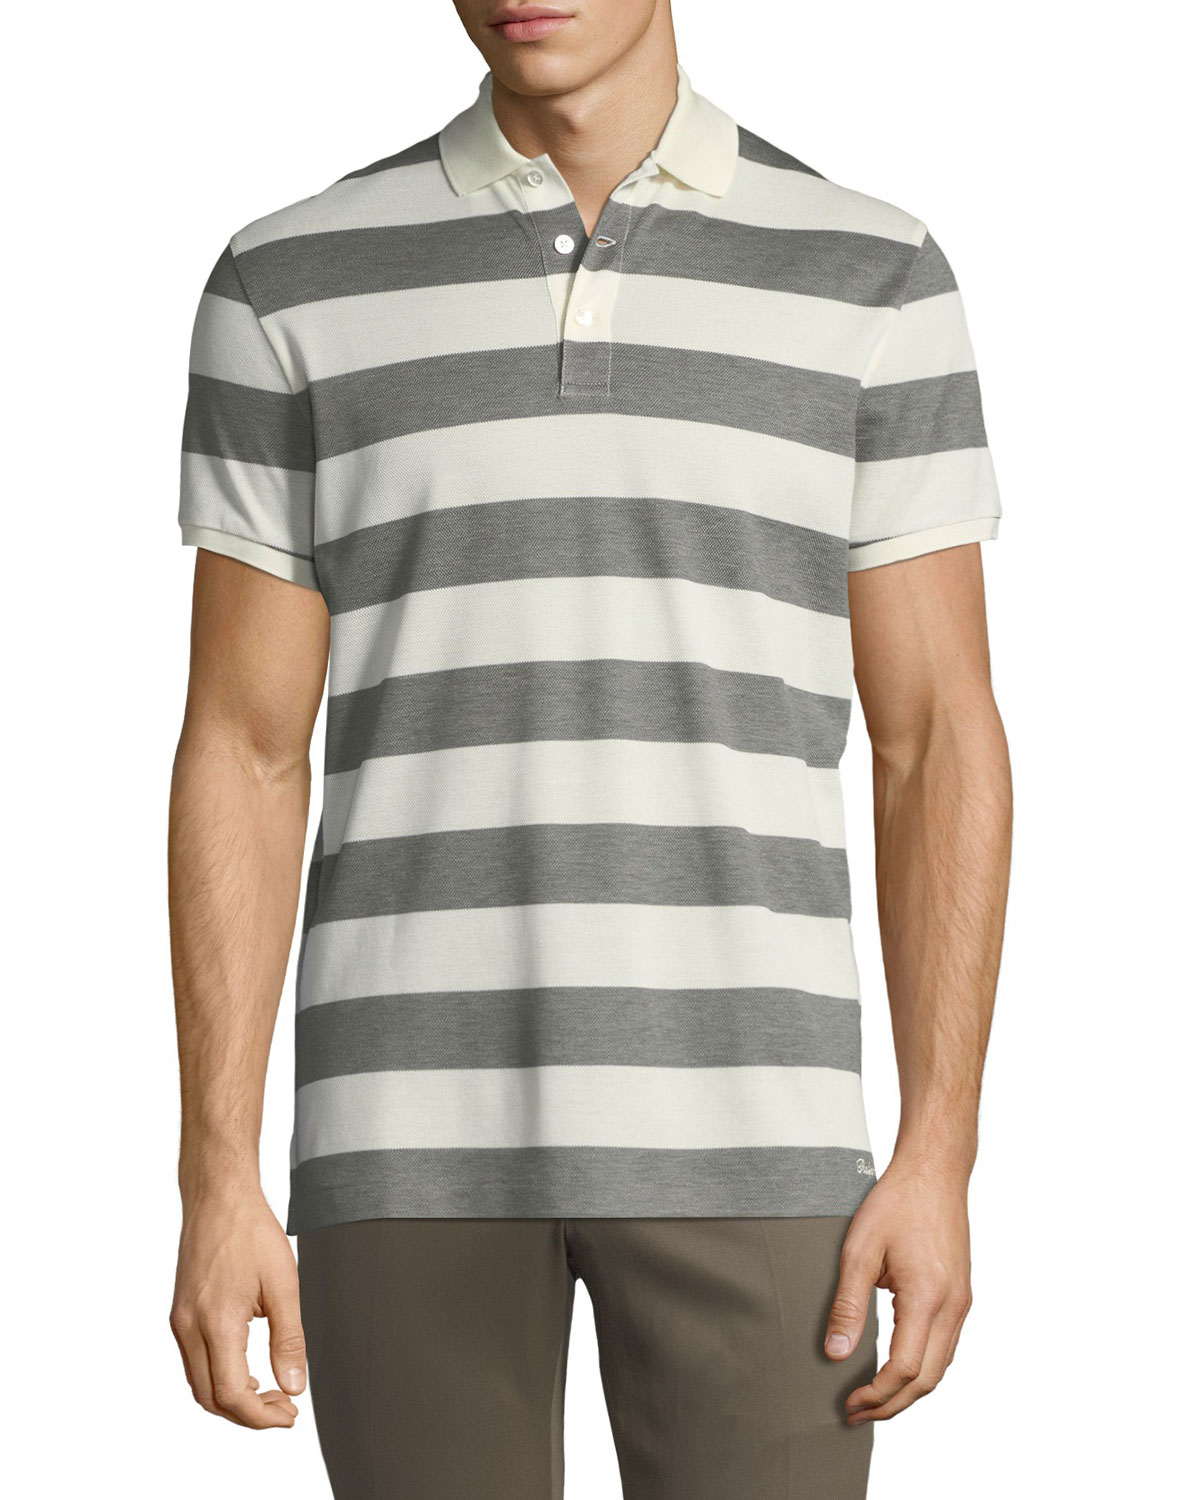 Short Short Sleeve Sleeve Polo Shirt Striped Striped 5Lq34ARj